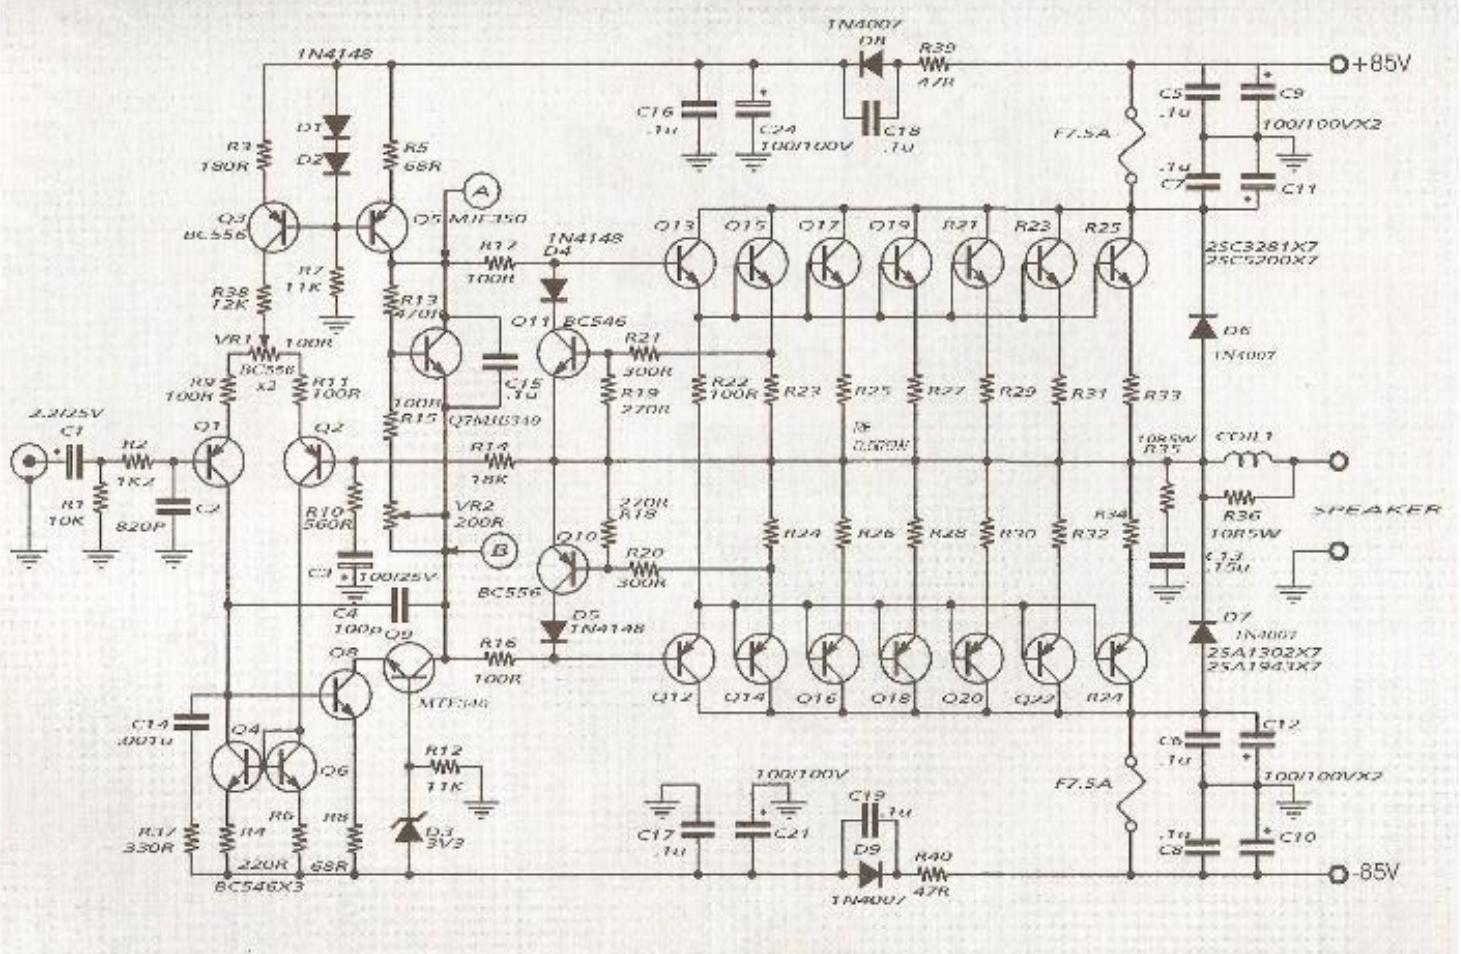 600W Audio Amplifier Circuit with 85V 8Ohms  The Circuit